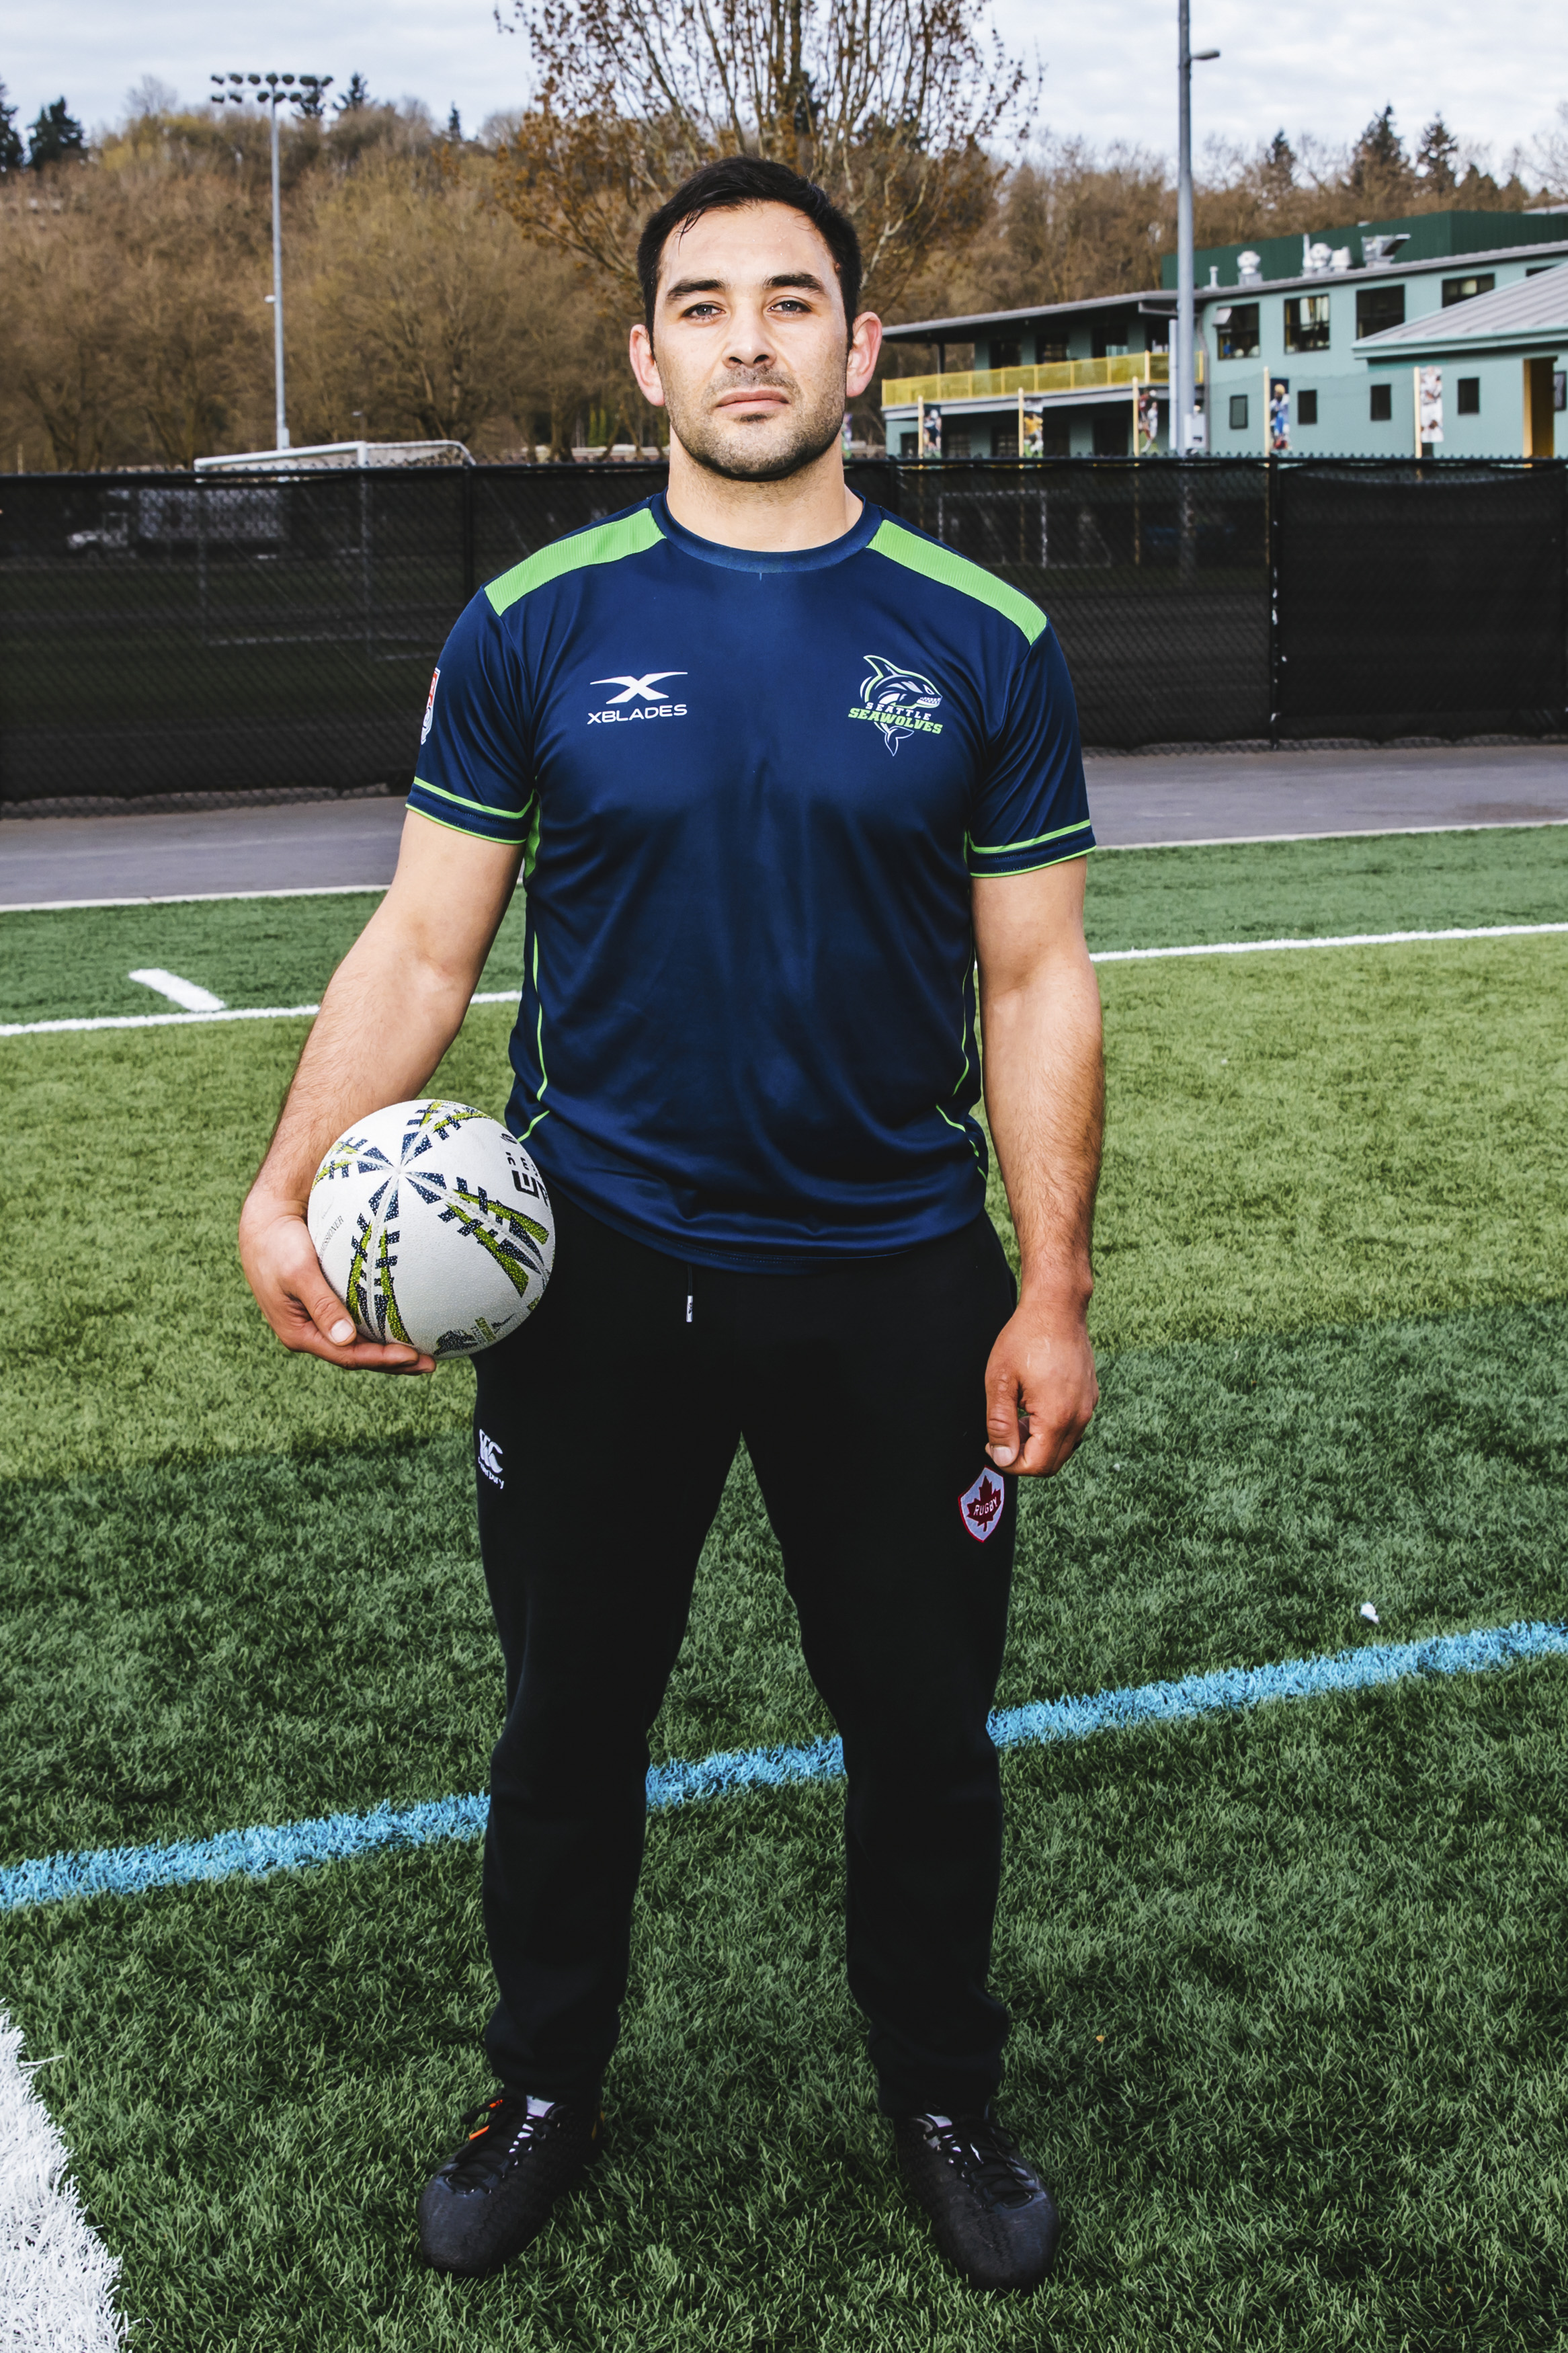 Phil, 33, plays Scrum Half for the Seattle Seawolves! He is a friend from across the northern border, originally from Victoria, B.C. and his favorite snack is High Chews. Good choice, Phil. Good choice. (Image: Sunita Martini).